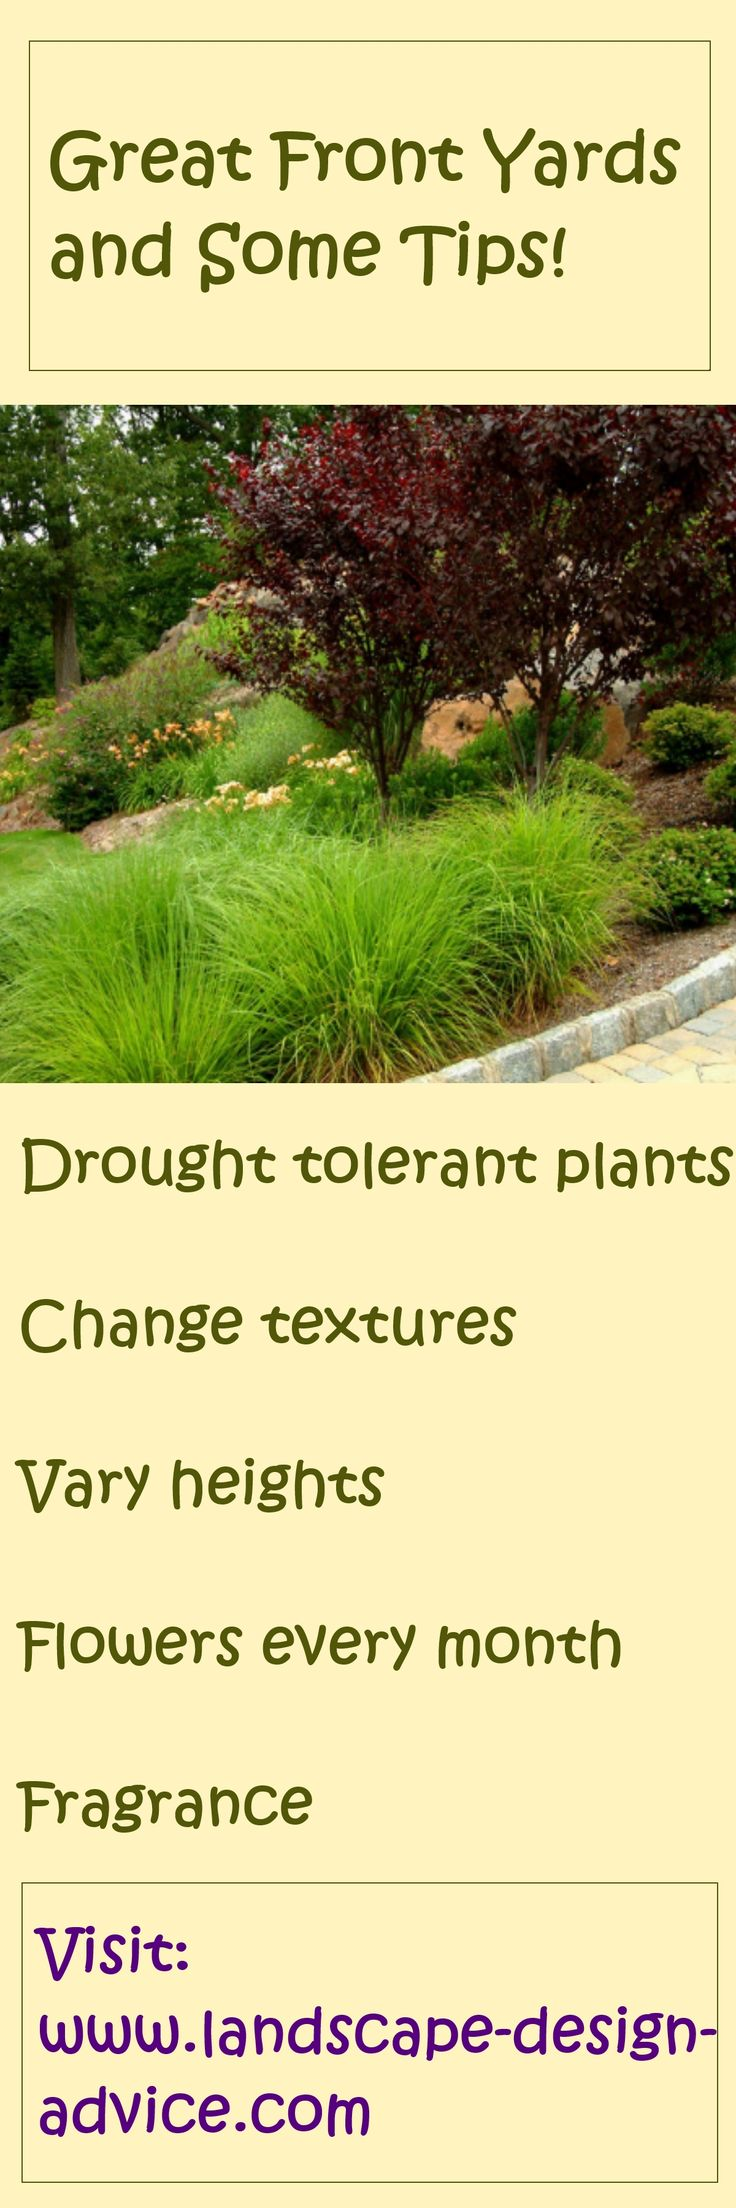 Some tips on creating beautiful and colorful front yard designs. http://www.landscape-design-advice.com/front-yard-landscaping-ideas.html